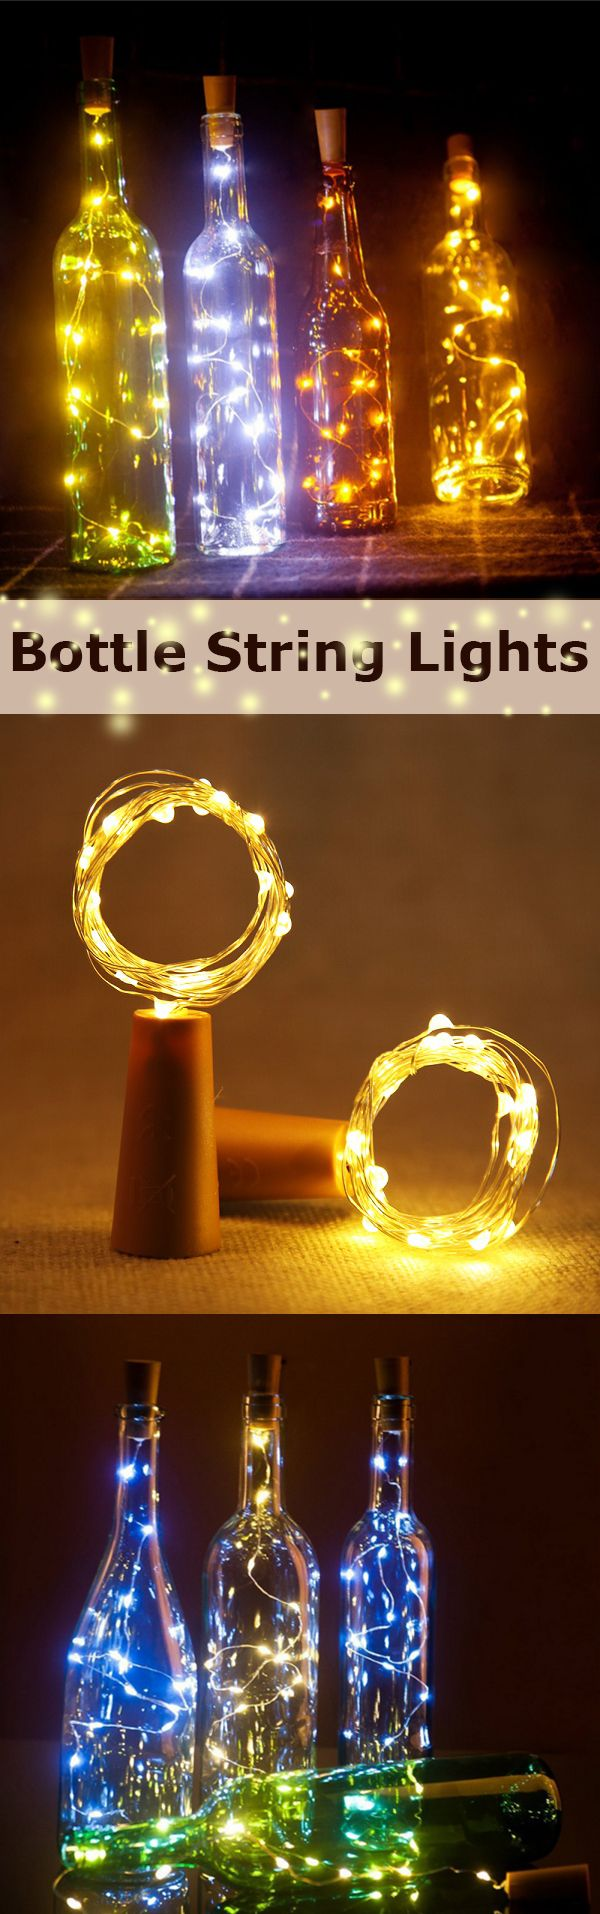 US$4.42 Glass Wine Bottle String Lights Champagne Cork LED Light For Chrismas Festival Party Decor #newchic#home#decor#light#Christmas#party